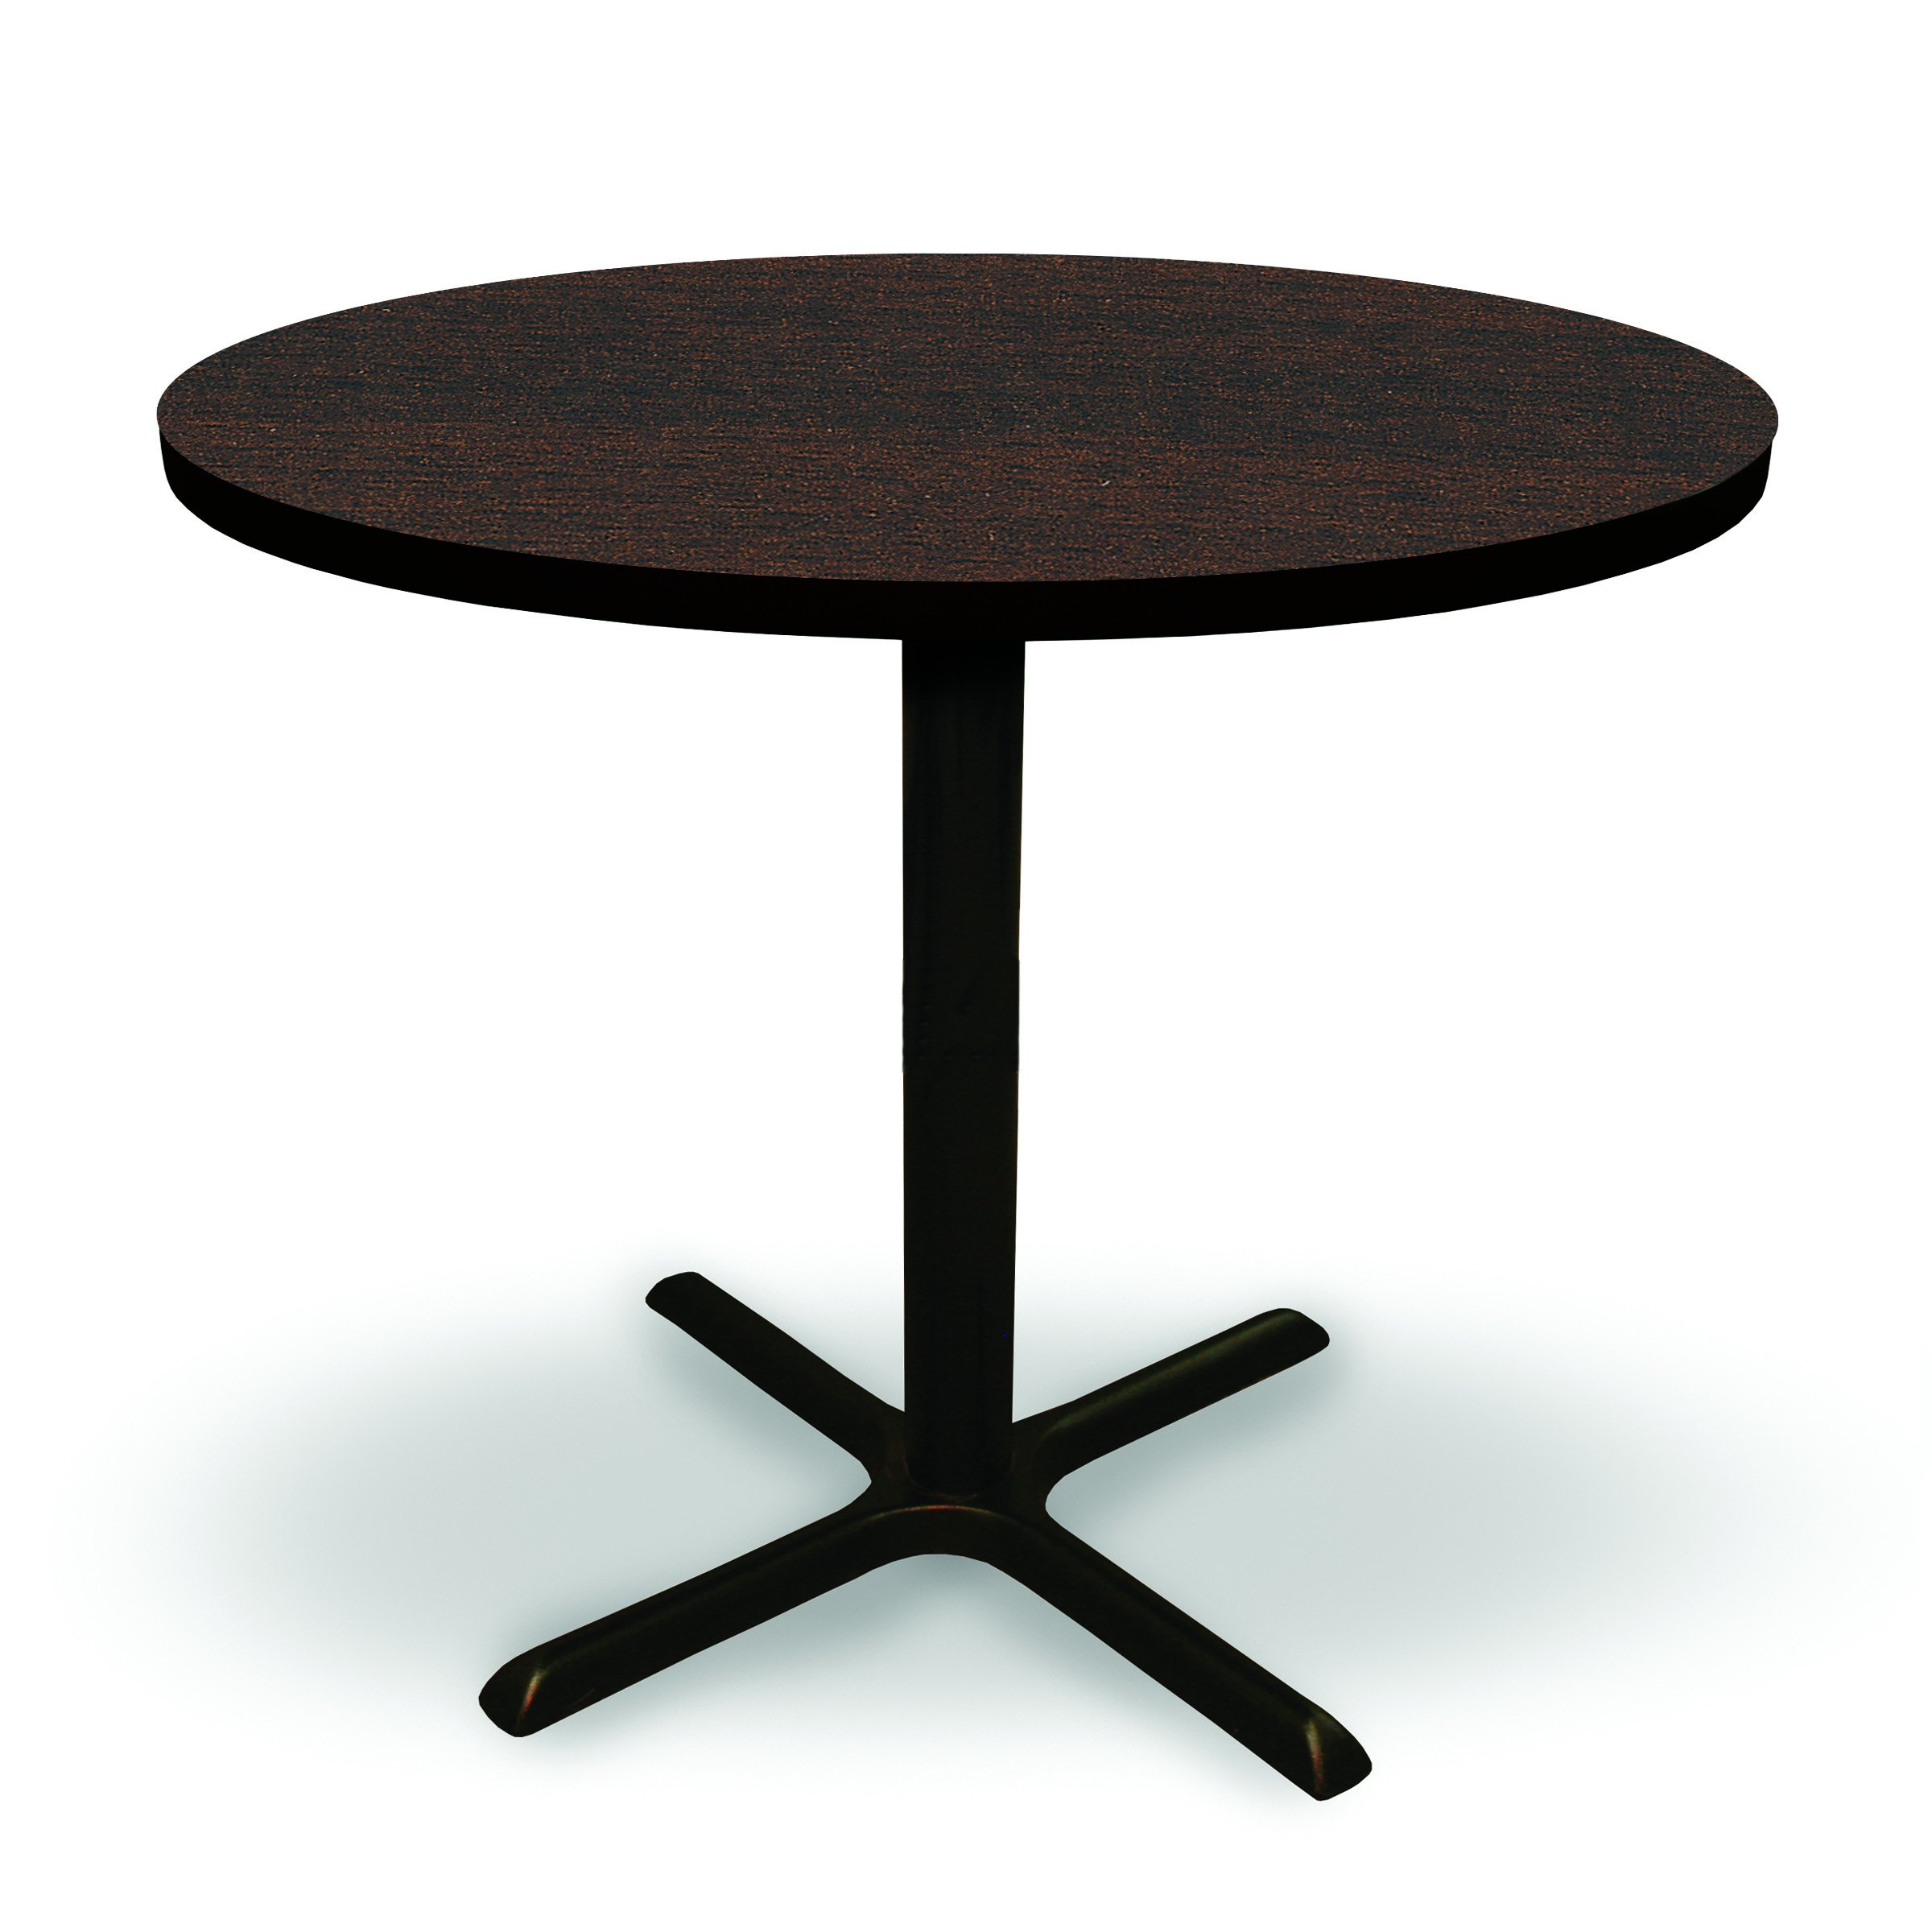 36'' Round Conference, Break Room, Multipurpose Table (42'' Tall Café Height) - Columbia Walnut Laminate/ Black Finish